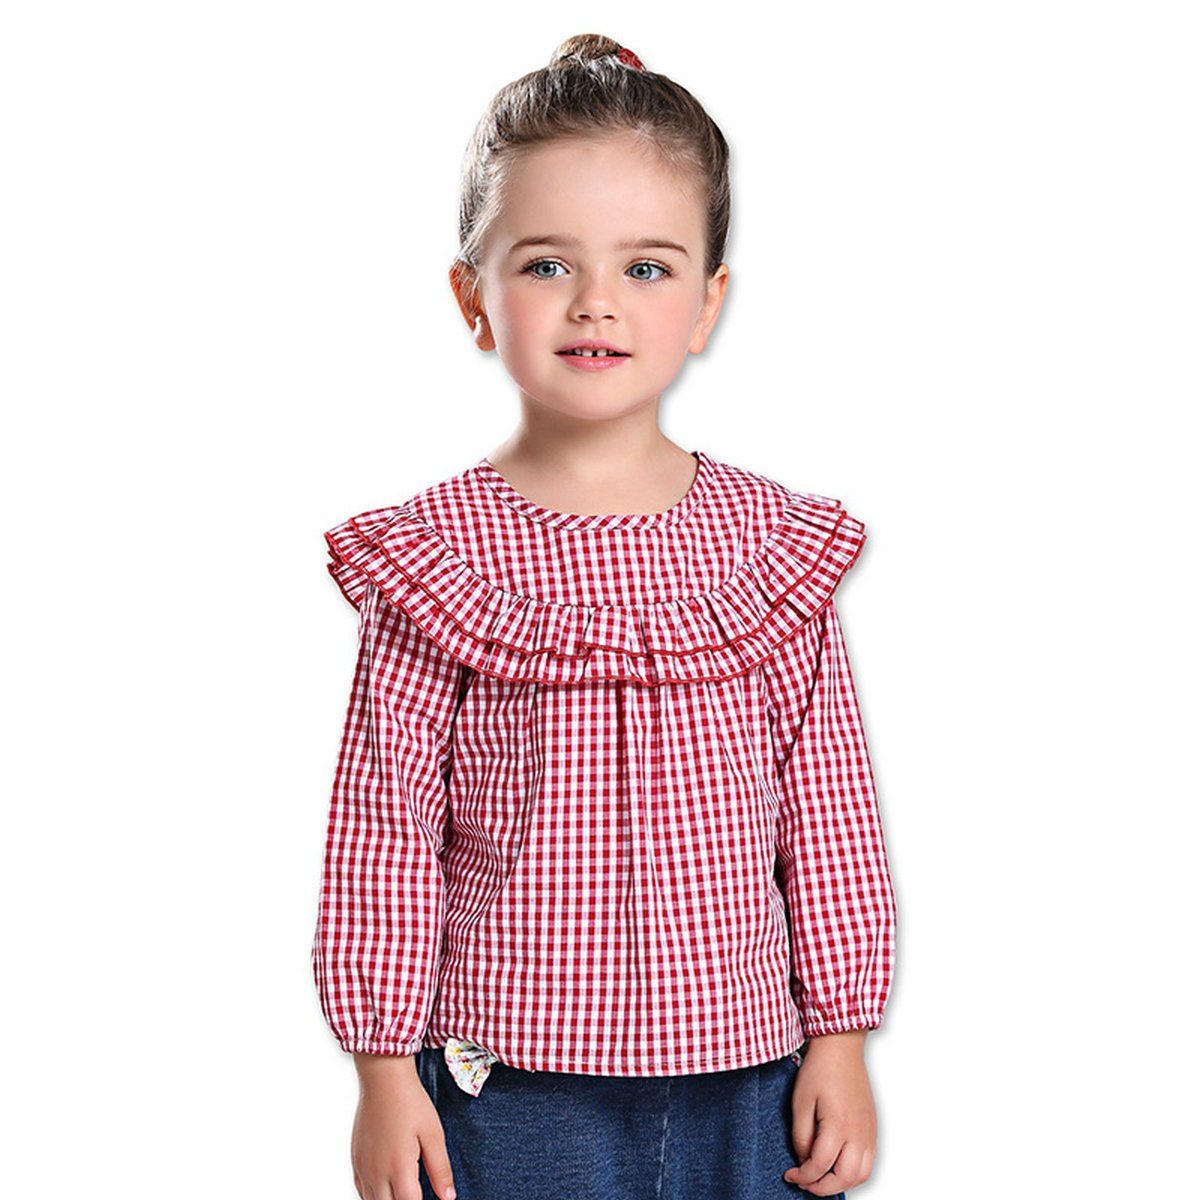 Freefly Toddler Girl Cute Long Sleeve Tops Plaid Ruffled Shirt Kids Blouses